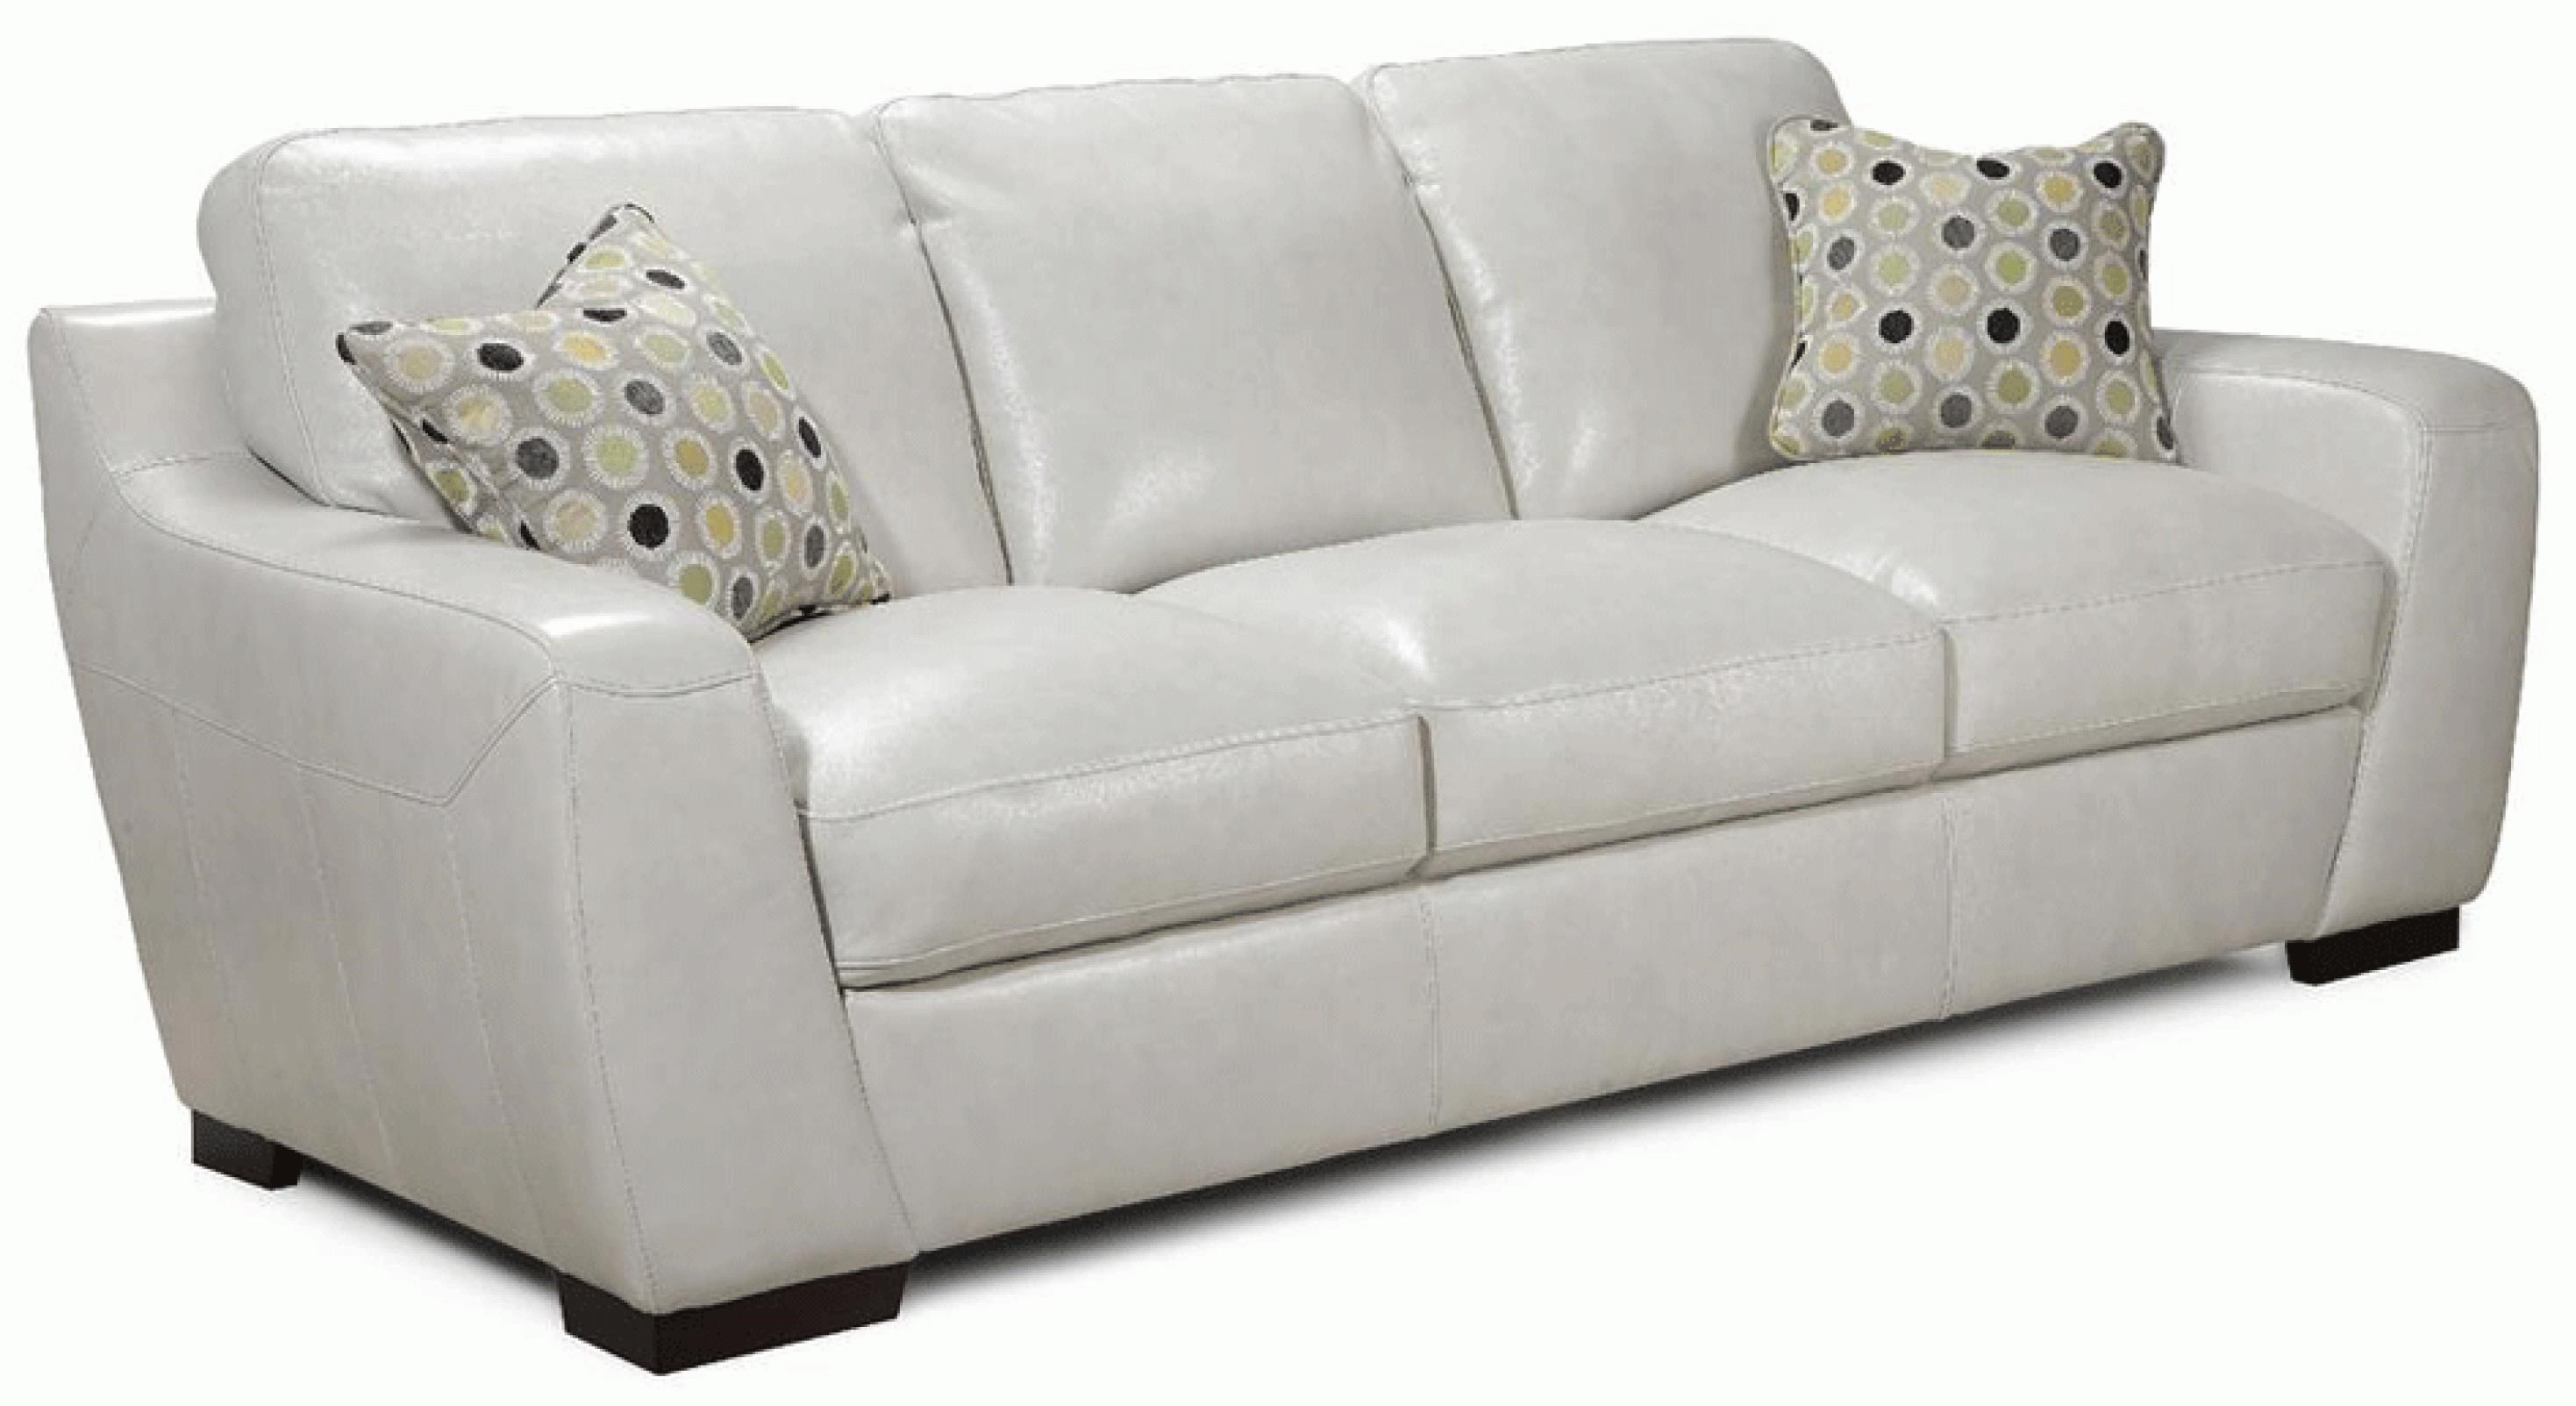 Alpha Sofa Group Simon Li Alpha Stationary Leather Match Sofa With Fabric Accent